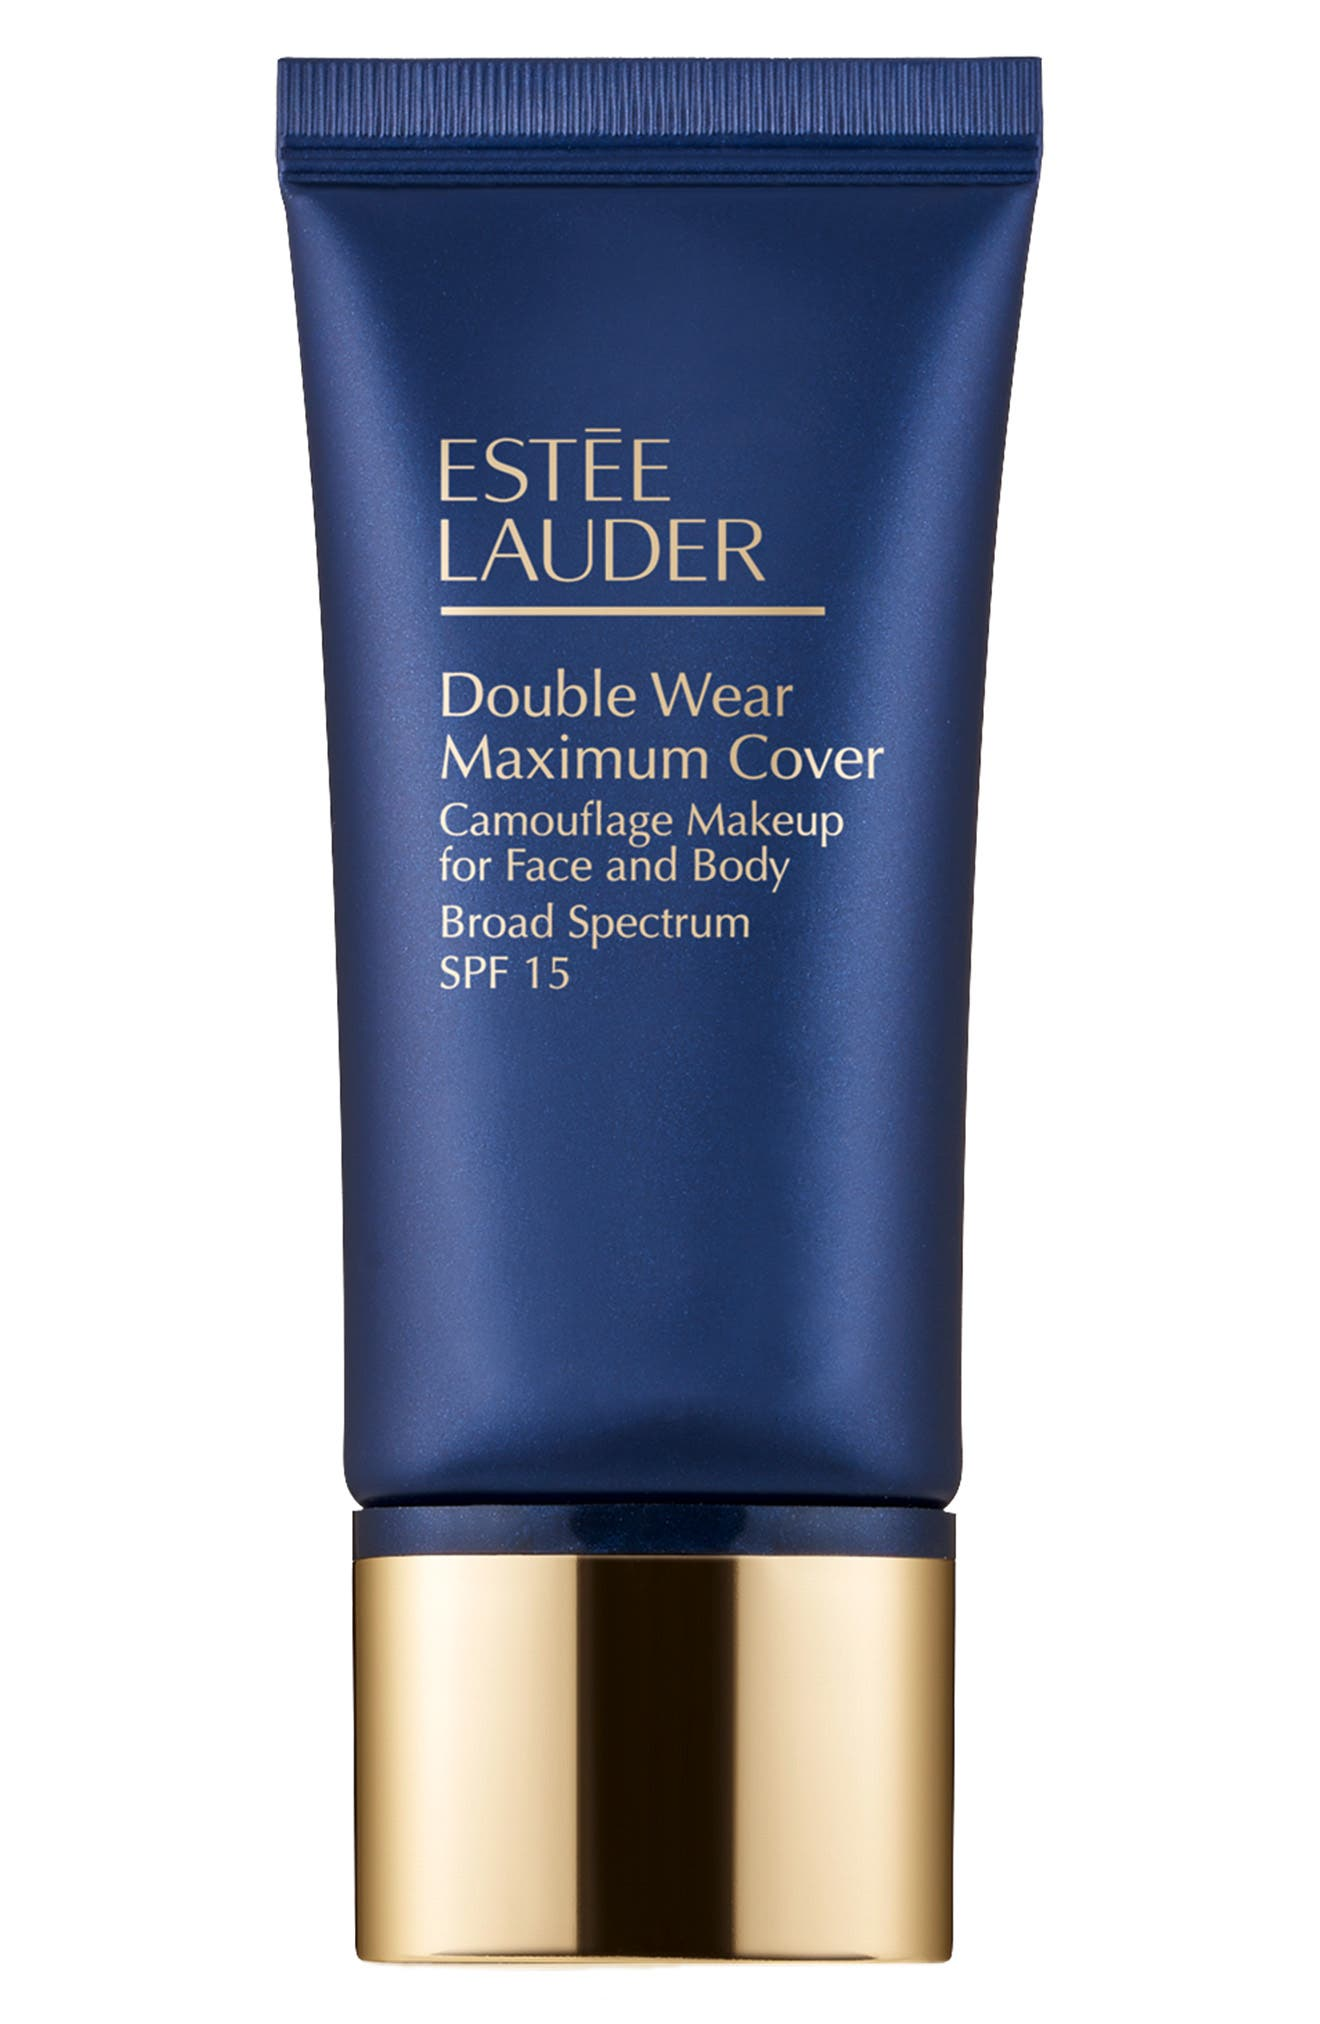 Alternate Image 1 Selected - Estée Lauder Double Wear Maximum Cover Camouflage Makeup for Face and Body SPF 15